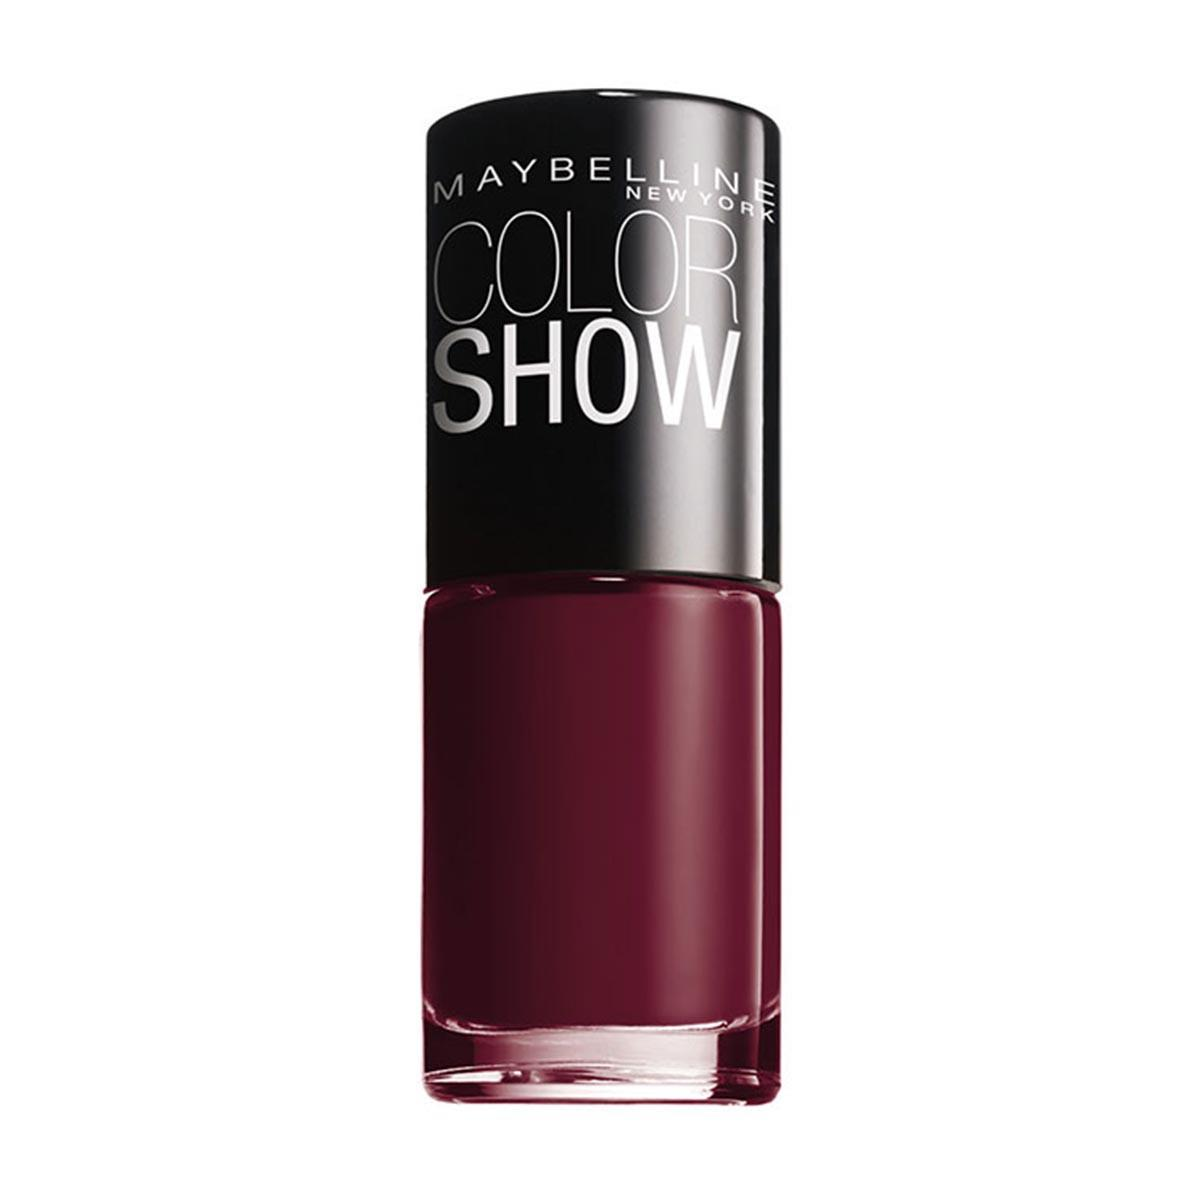 Maybelline fragrances Colorshow 352 Downtown Red